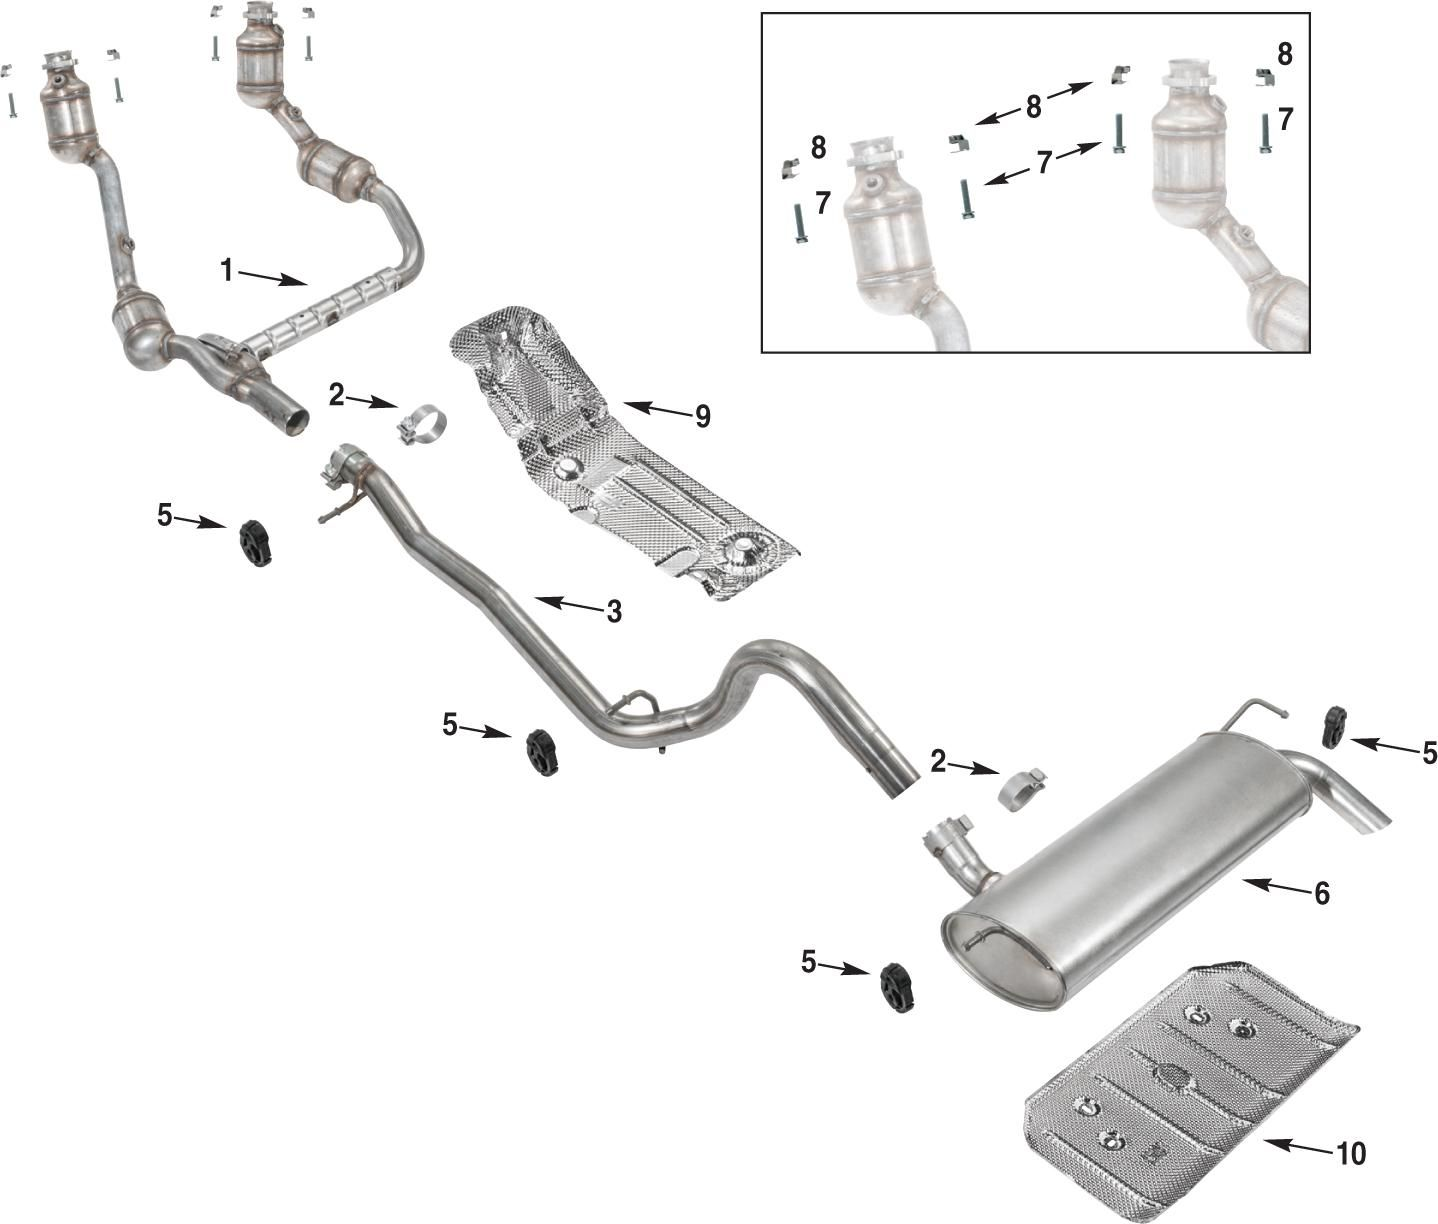 Wrangler Jk Exhaust Parts 07 11 Jpg 1438 1224 Wrangler Jk Jeep Electronic Products